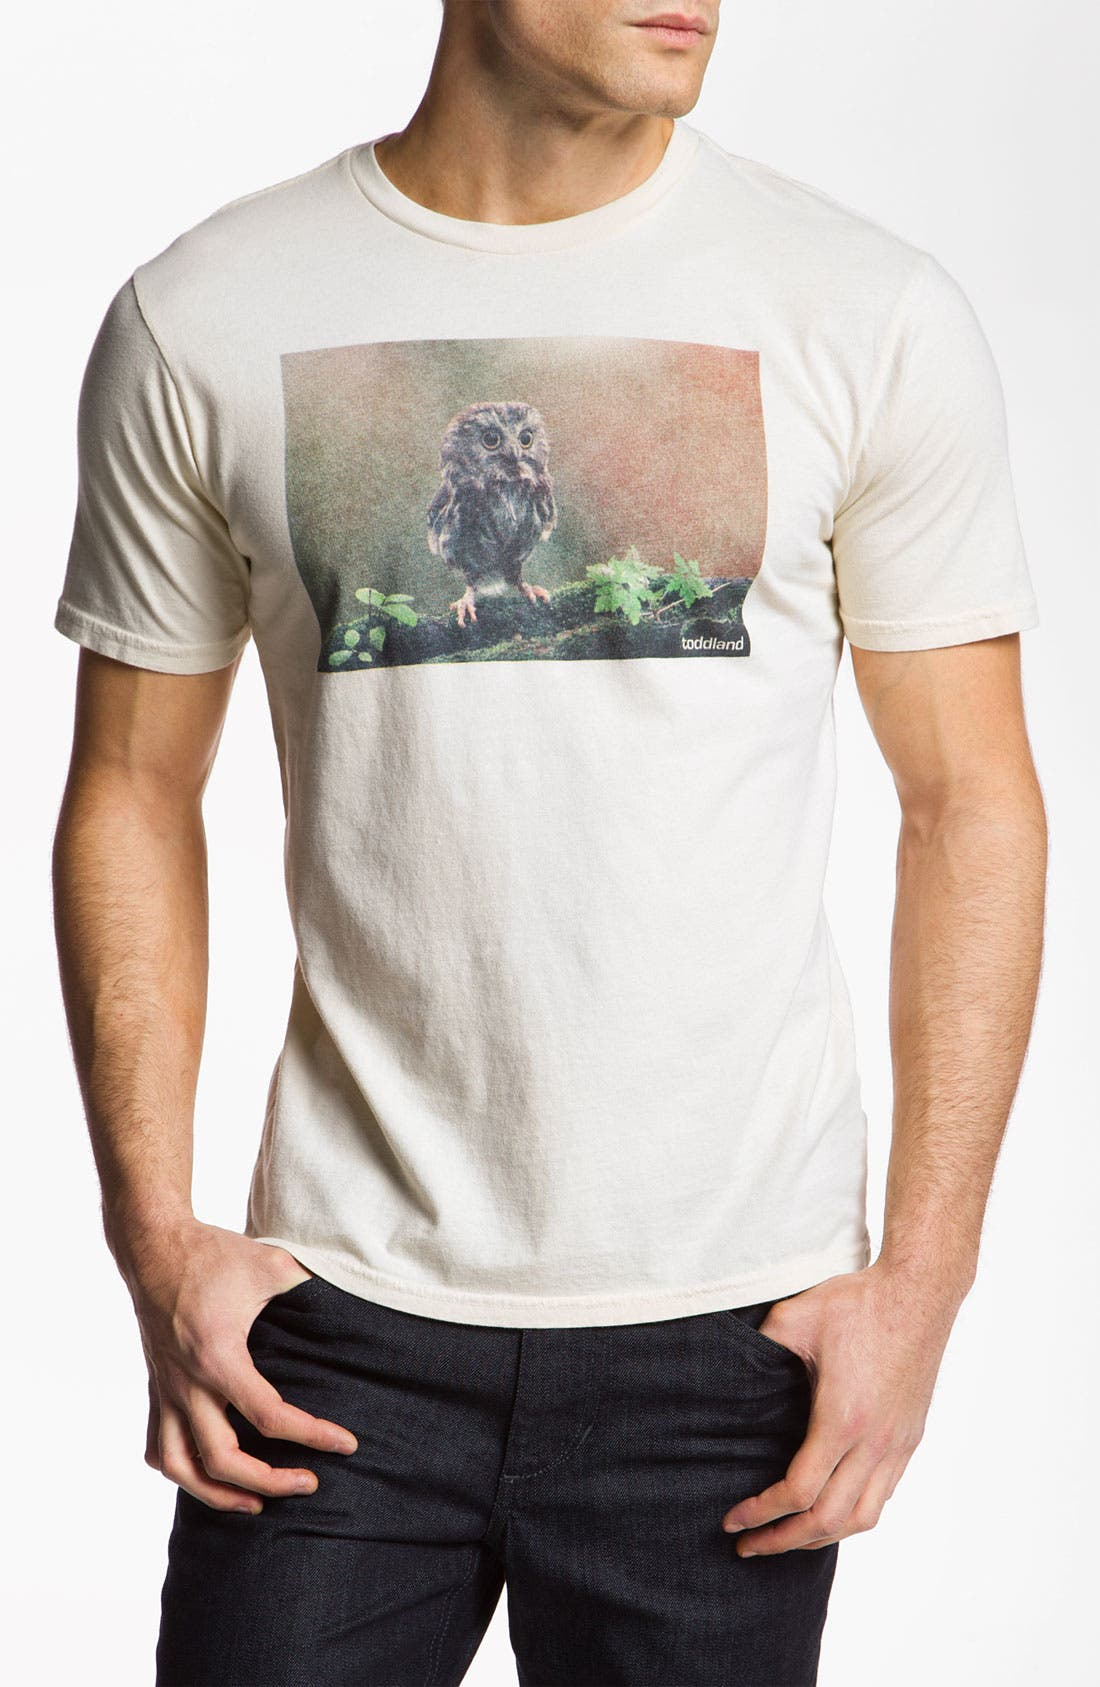 Alternate Image 1 Selected - Toddland 'Whet Owl' T-Shirt